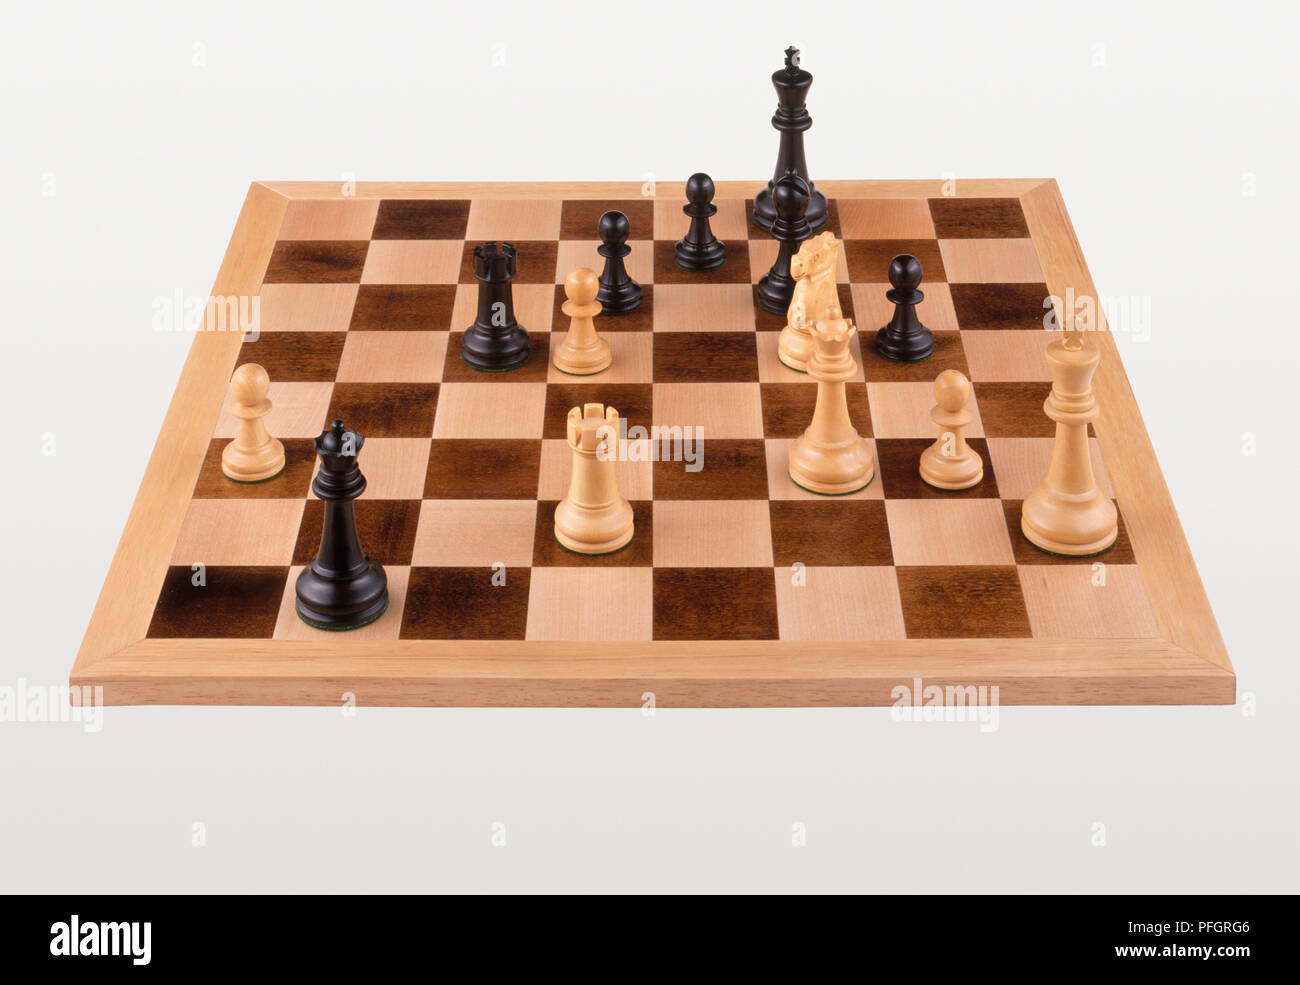 Chess match at endgame stage, close-up - Stock Image